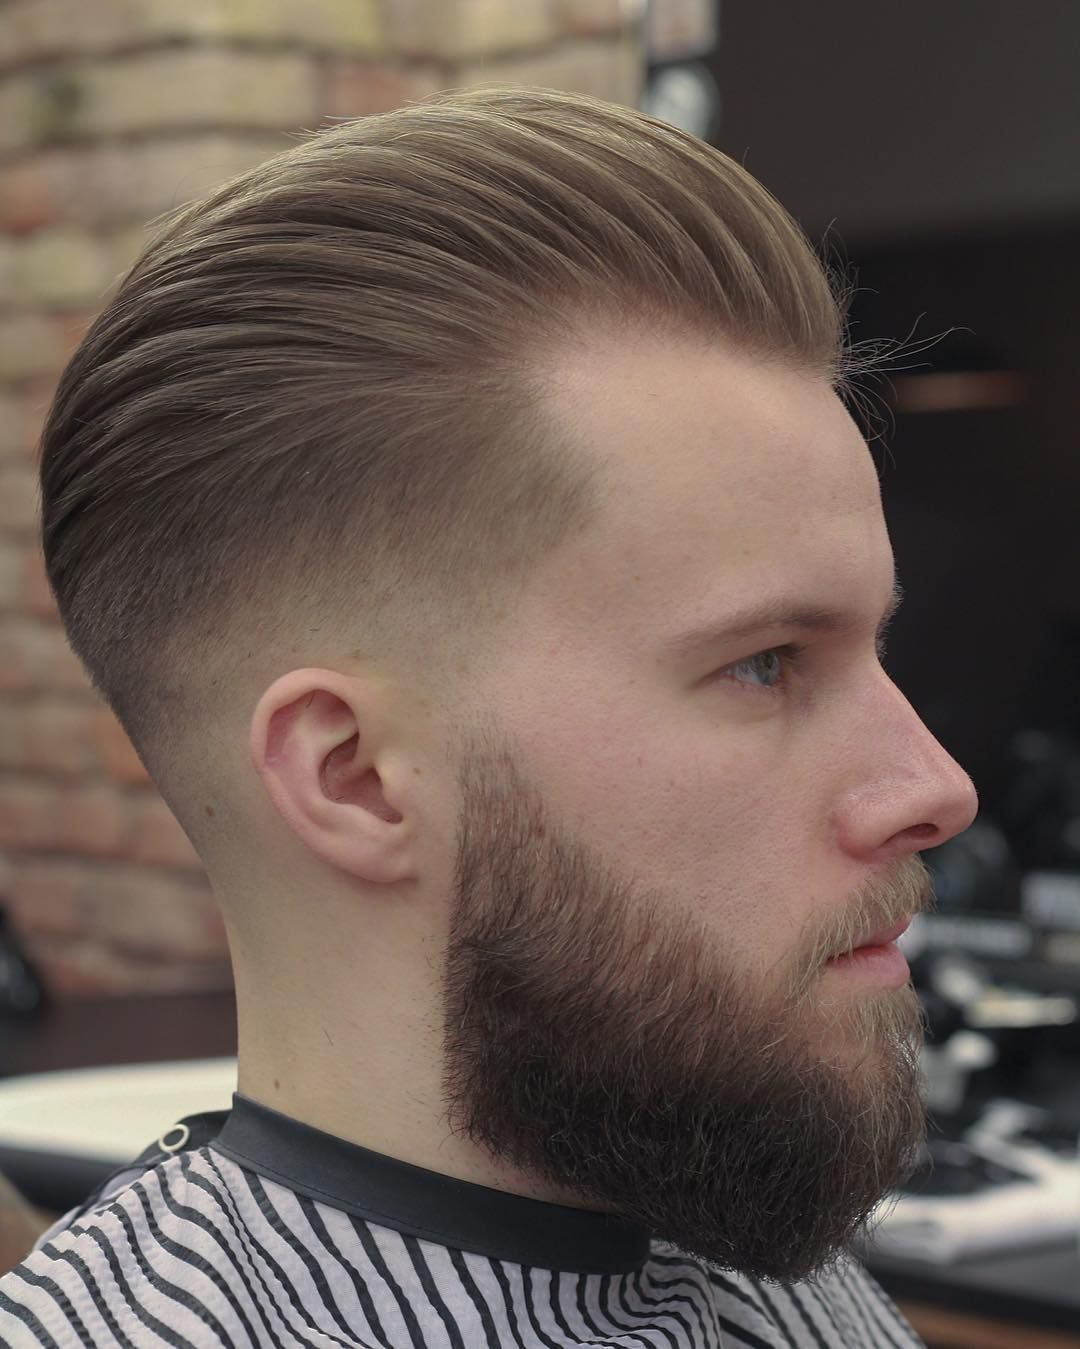 Top 25 Mens Haircuts Near Me Easy Hairstyles Acconciatura Maschile Capelli Corti Uomo Acconciature